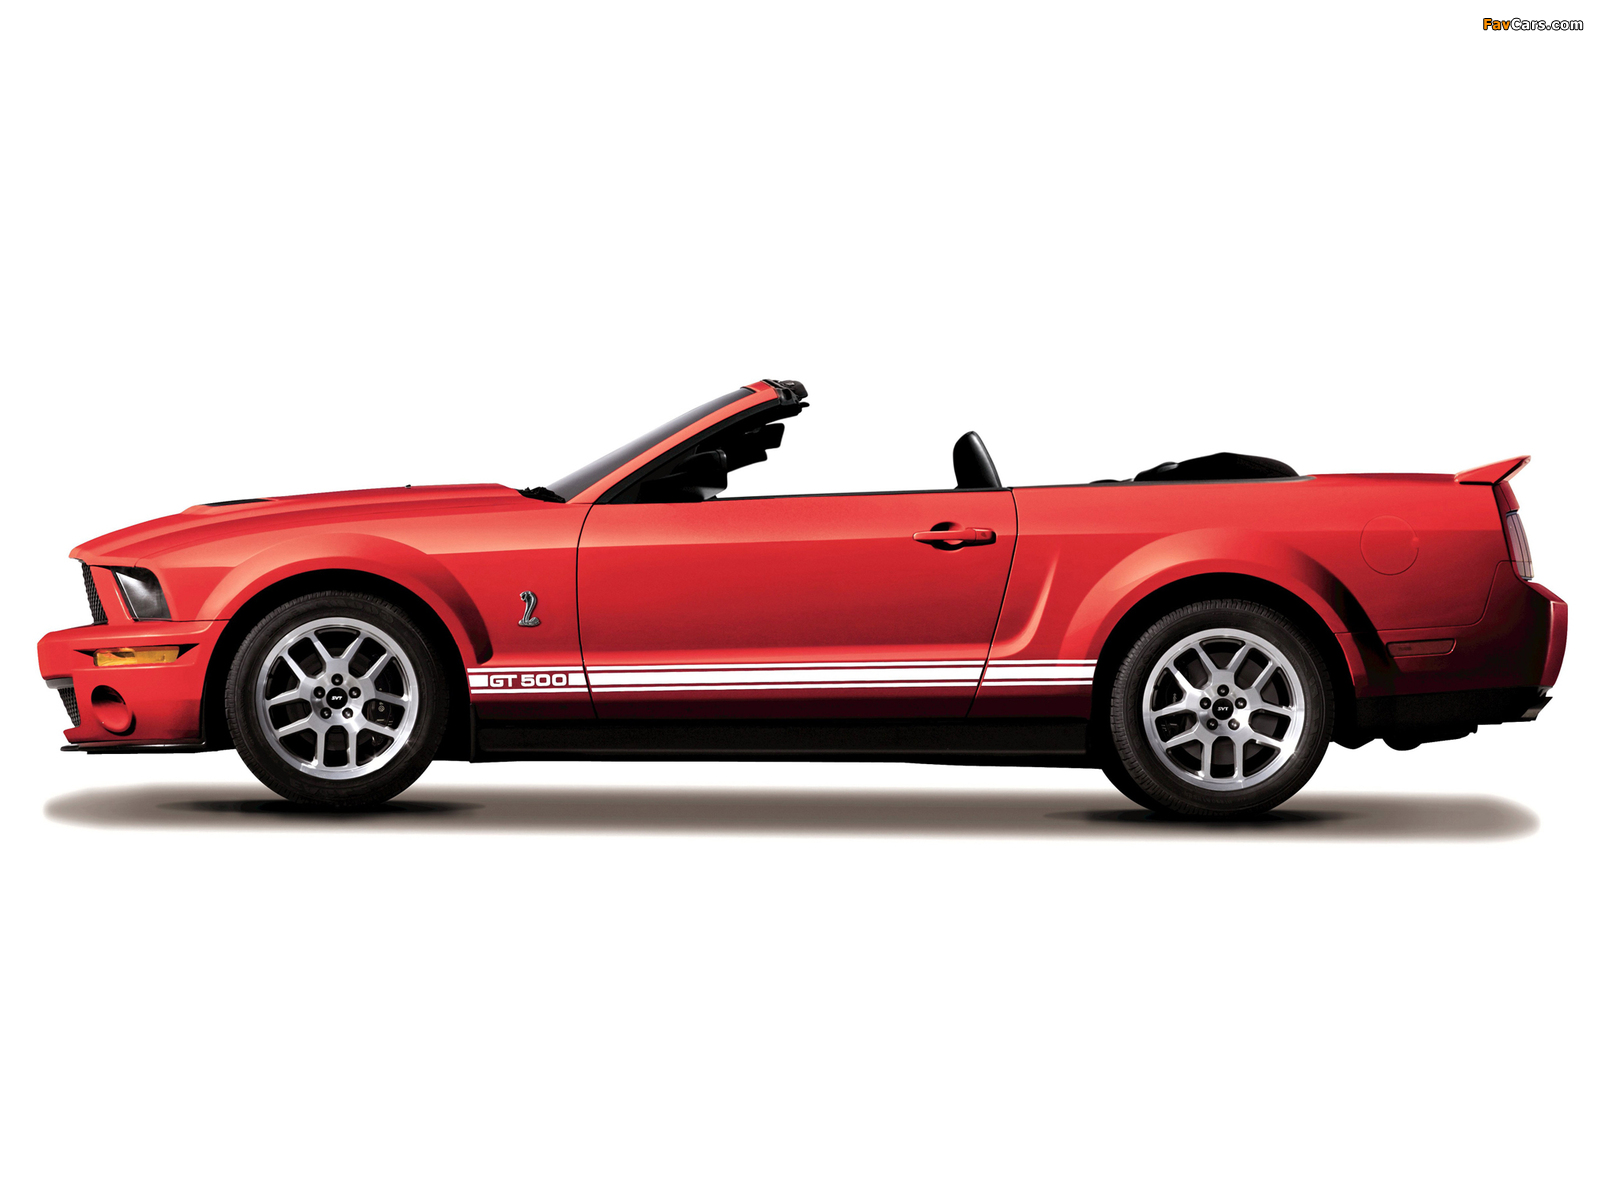 Photos Of Shelby Gt500 Convertible 2005 08 1600x1200